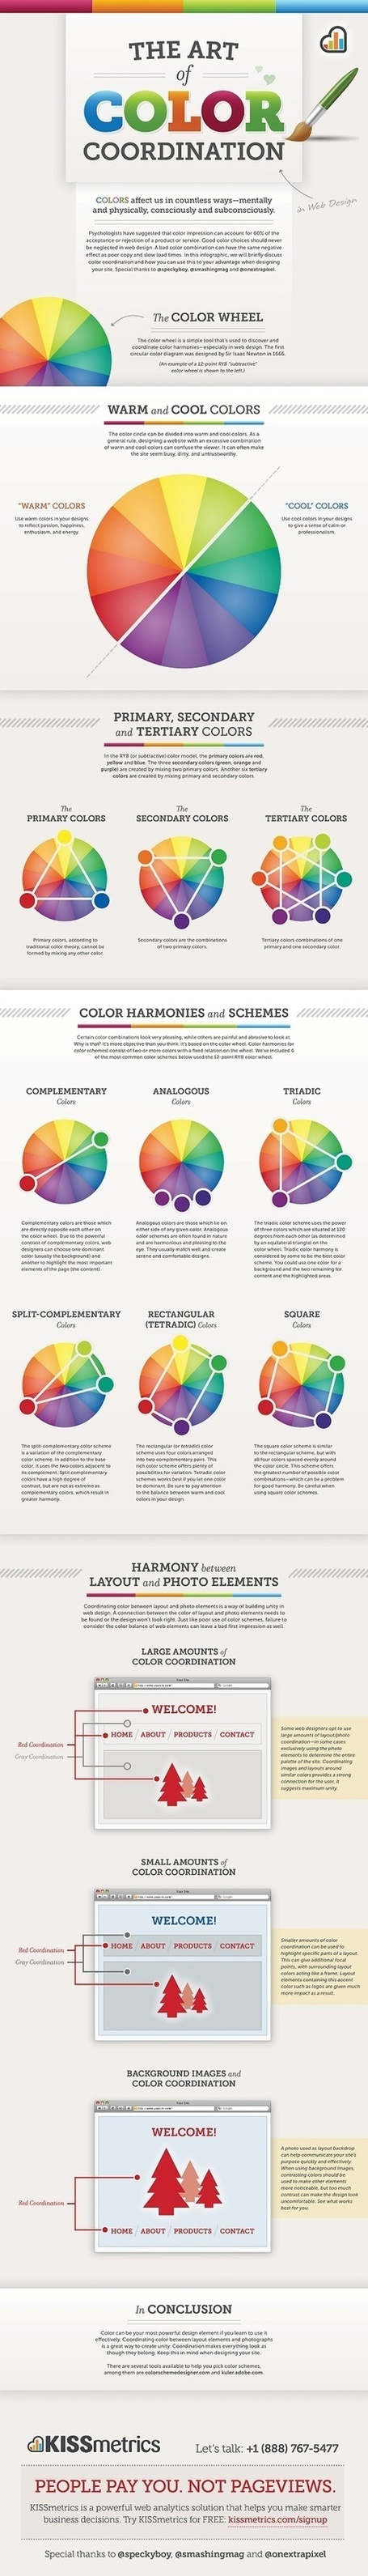 Color Is MASTER of Us All [Infographic] | Technology in Art And Education | Scoop.it